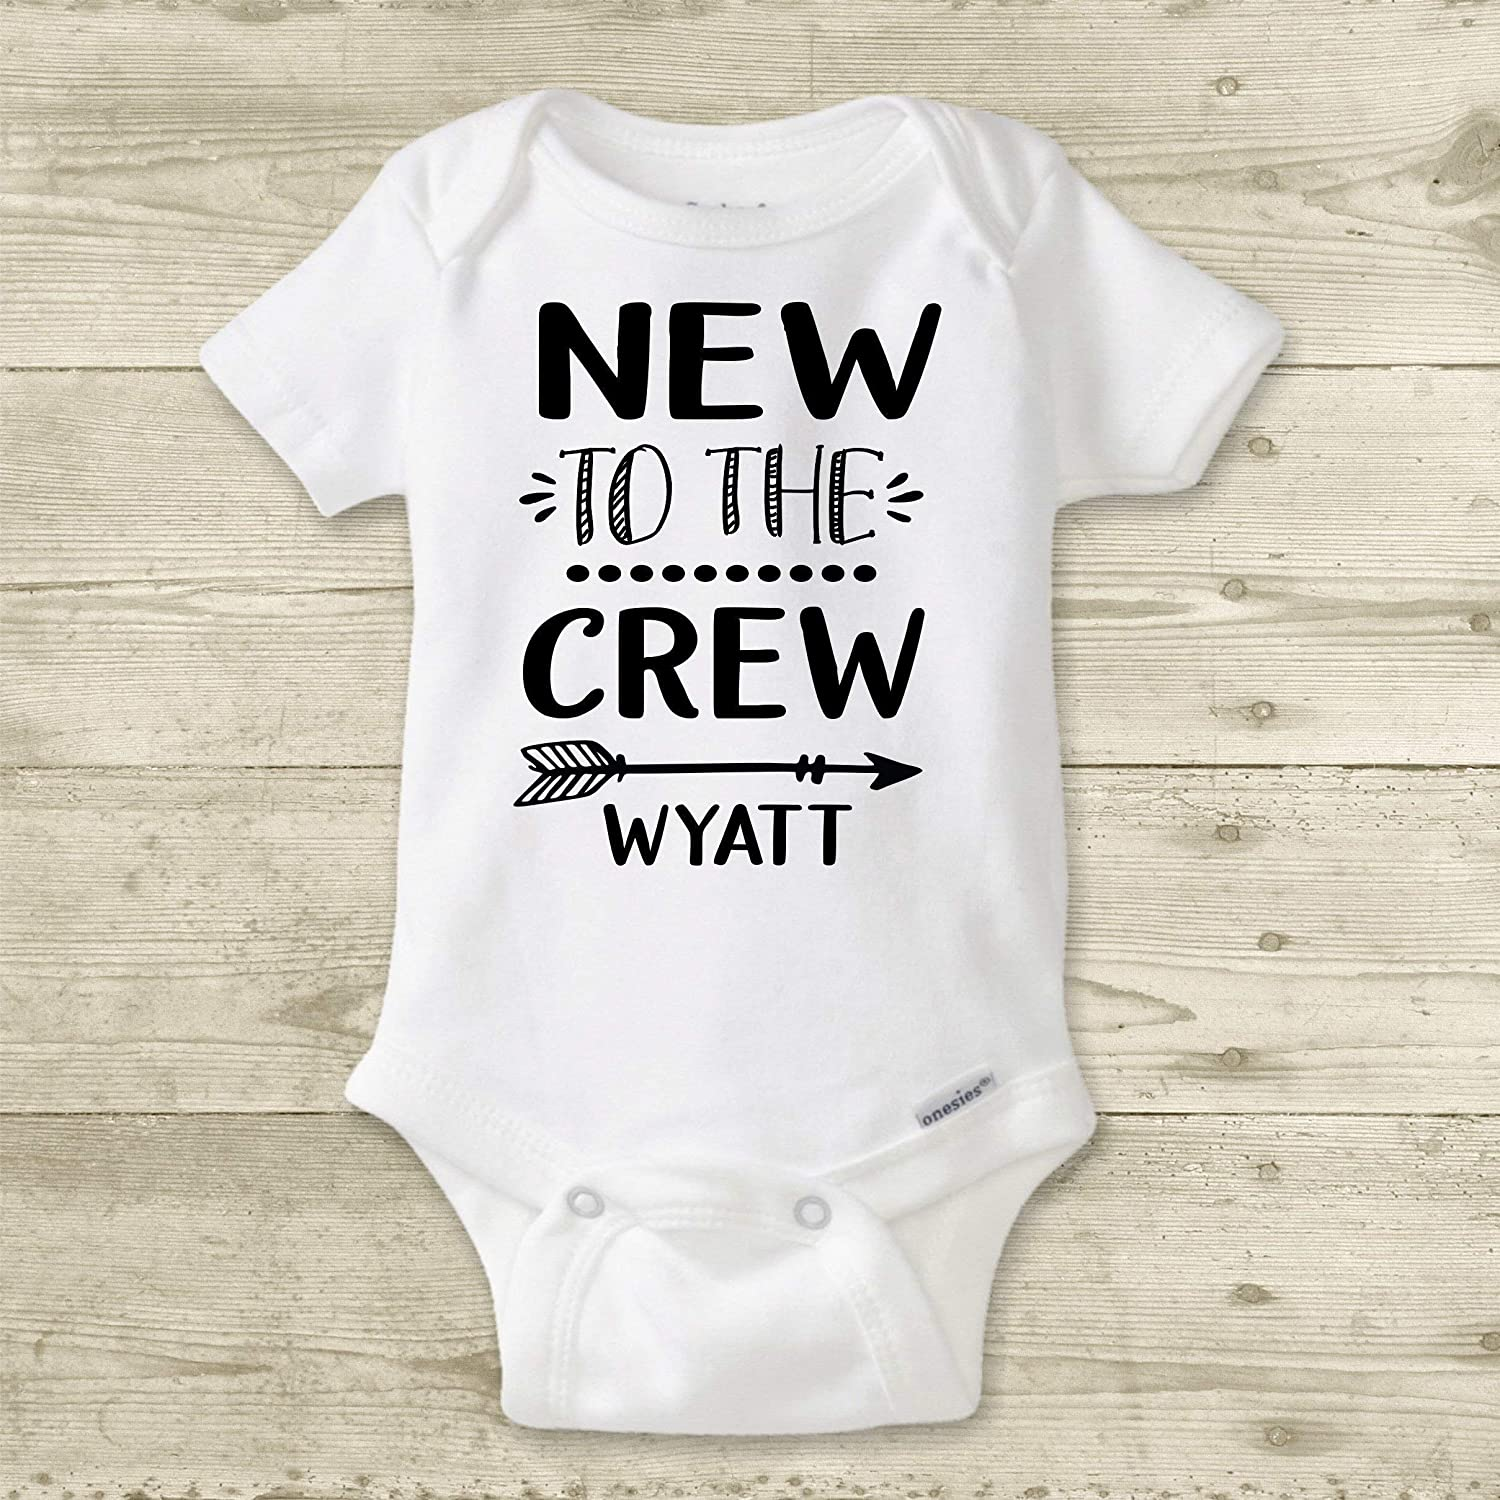 Baby Boy Coming Home Outfit Newborn Boy Coming Home Outfit Personalized Baby Boy Clothes Baby Shower Gift Boy Take Home Outfit Baby Boy Gift